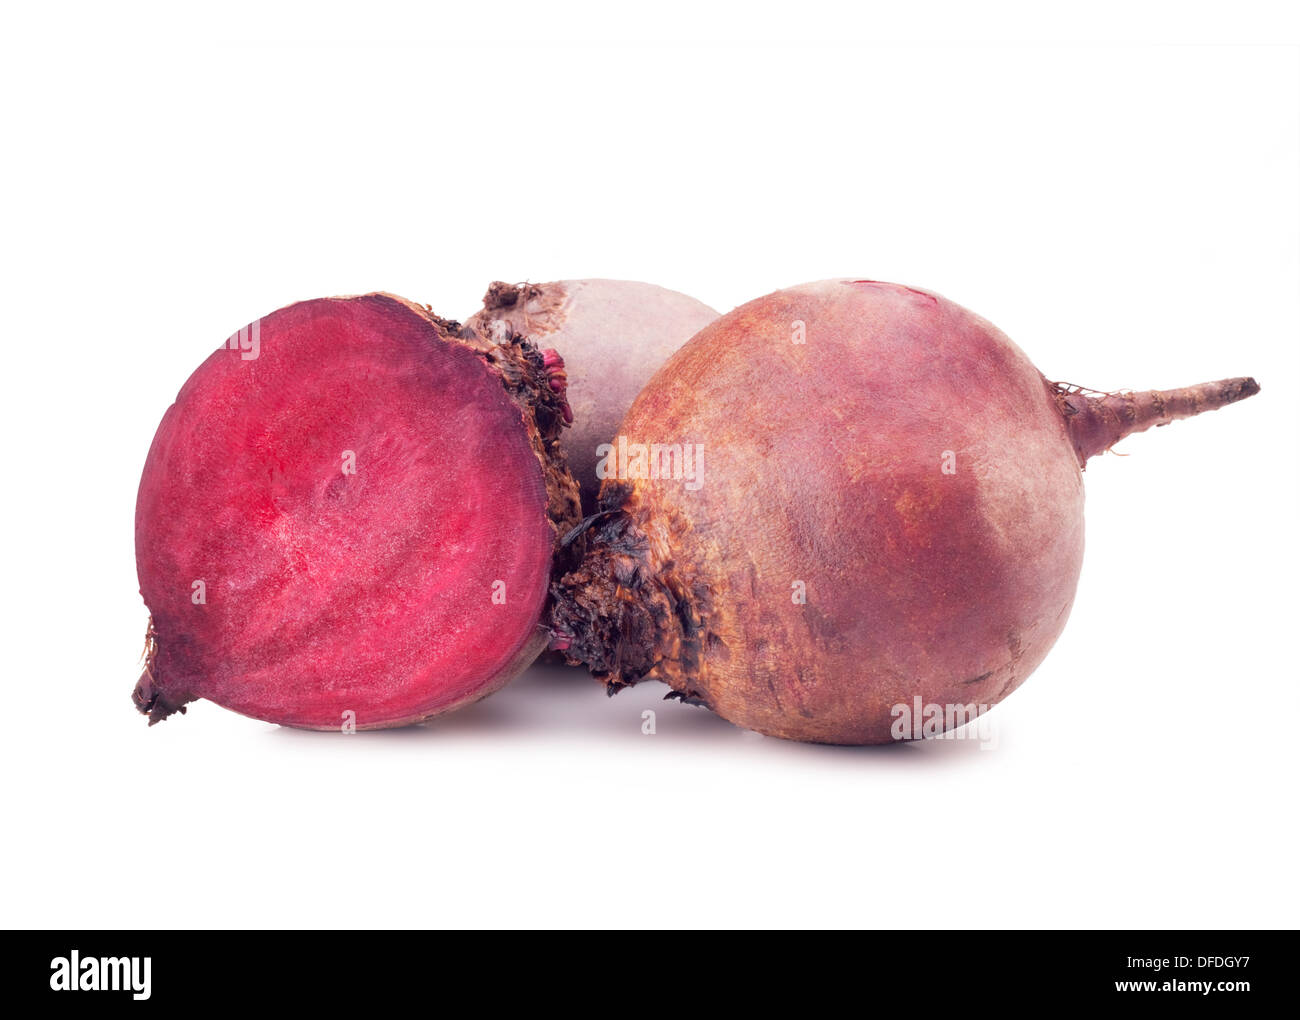 Fresh red beets on a white background - Stock Image